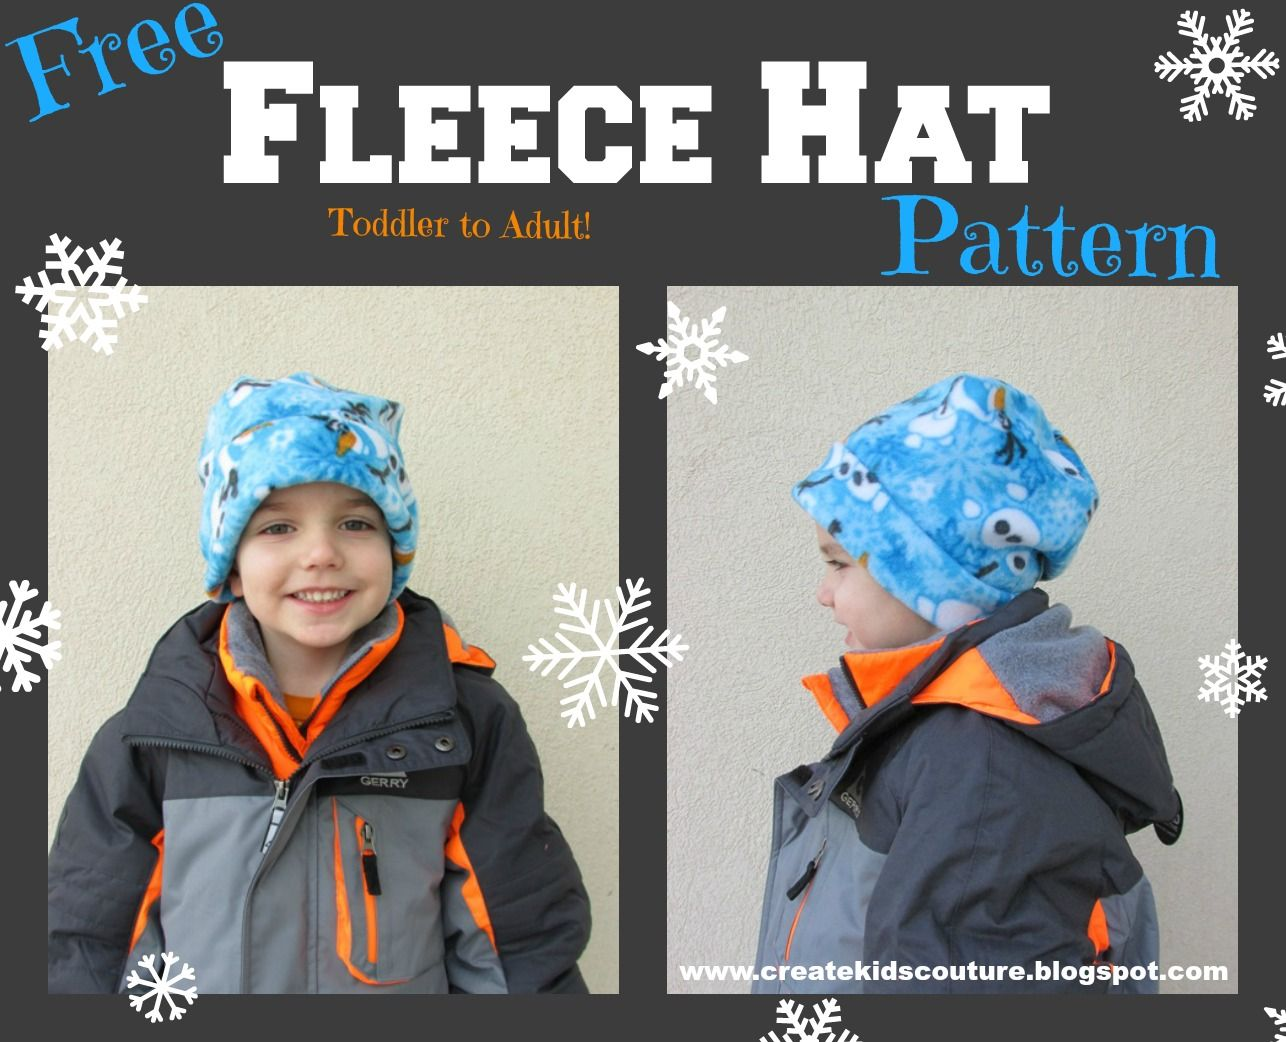 A blog with sewing tutorials and free patterns from create kids a blog with sewing tutorials and free patterns from create kids couture a leader in jeuxipadfo Images